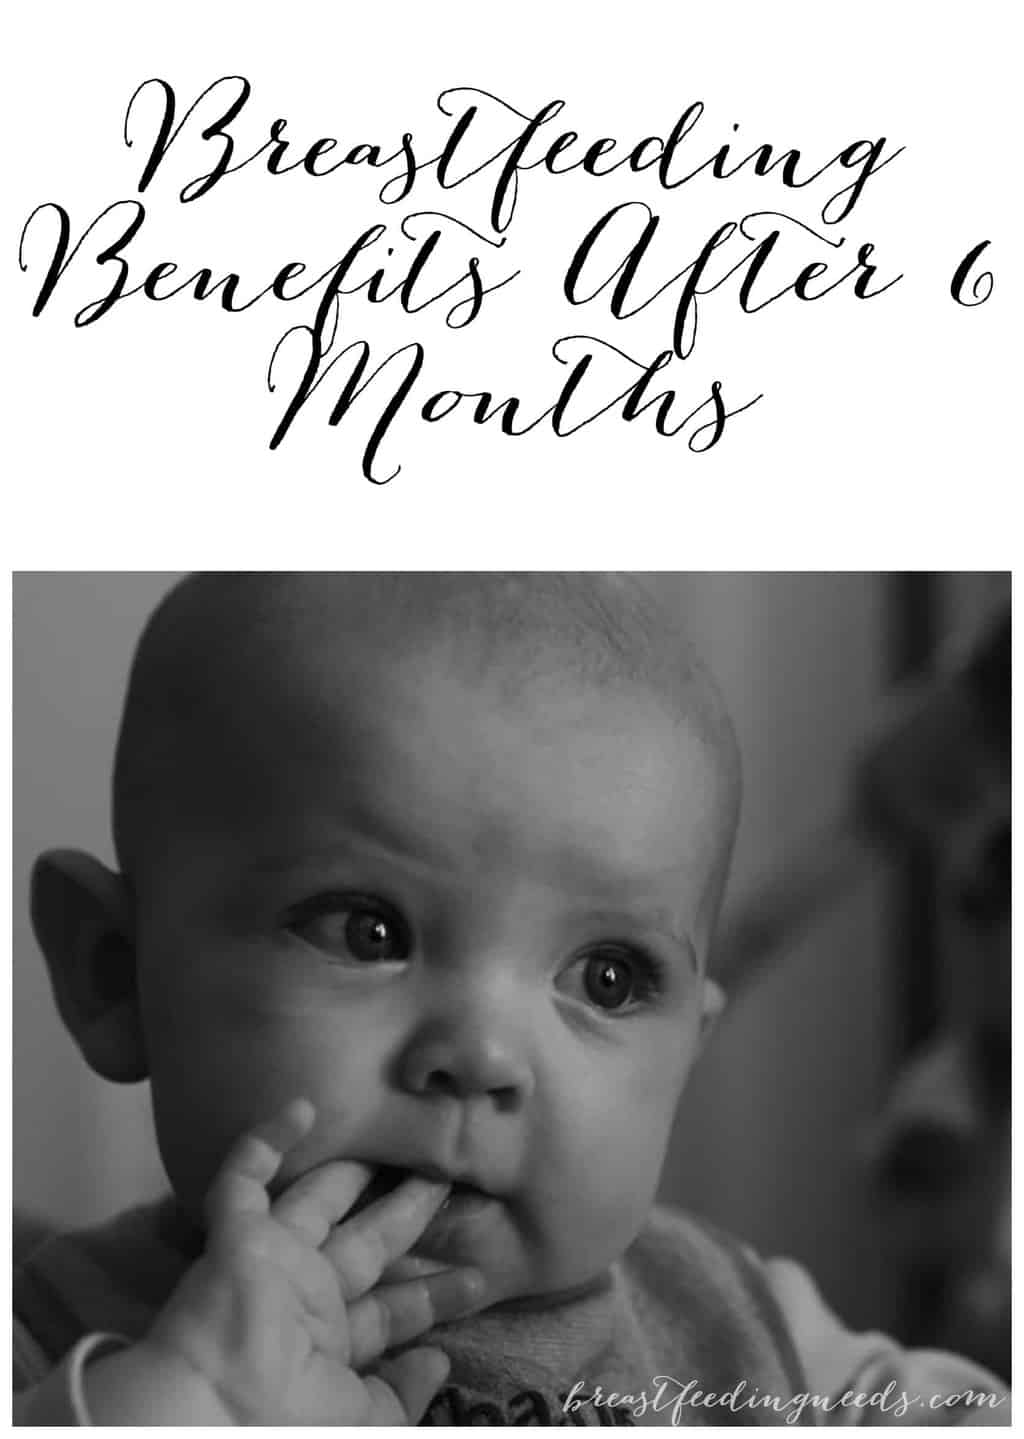 Breastfeeding Benefits After 6 Months